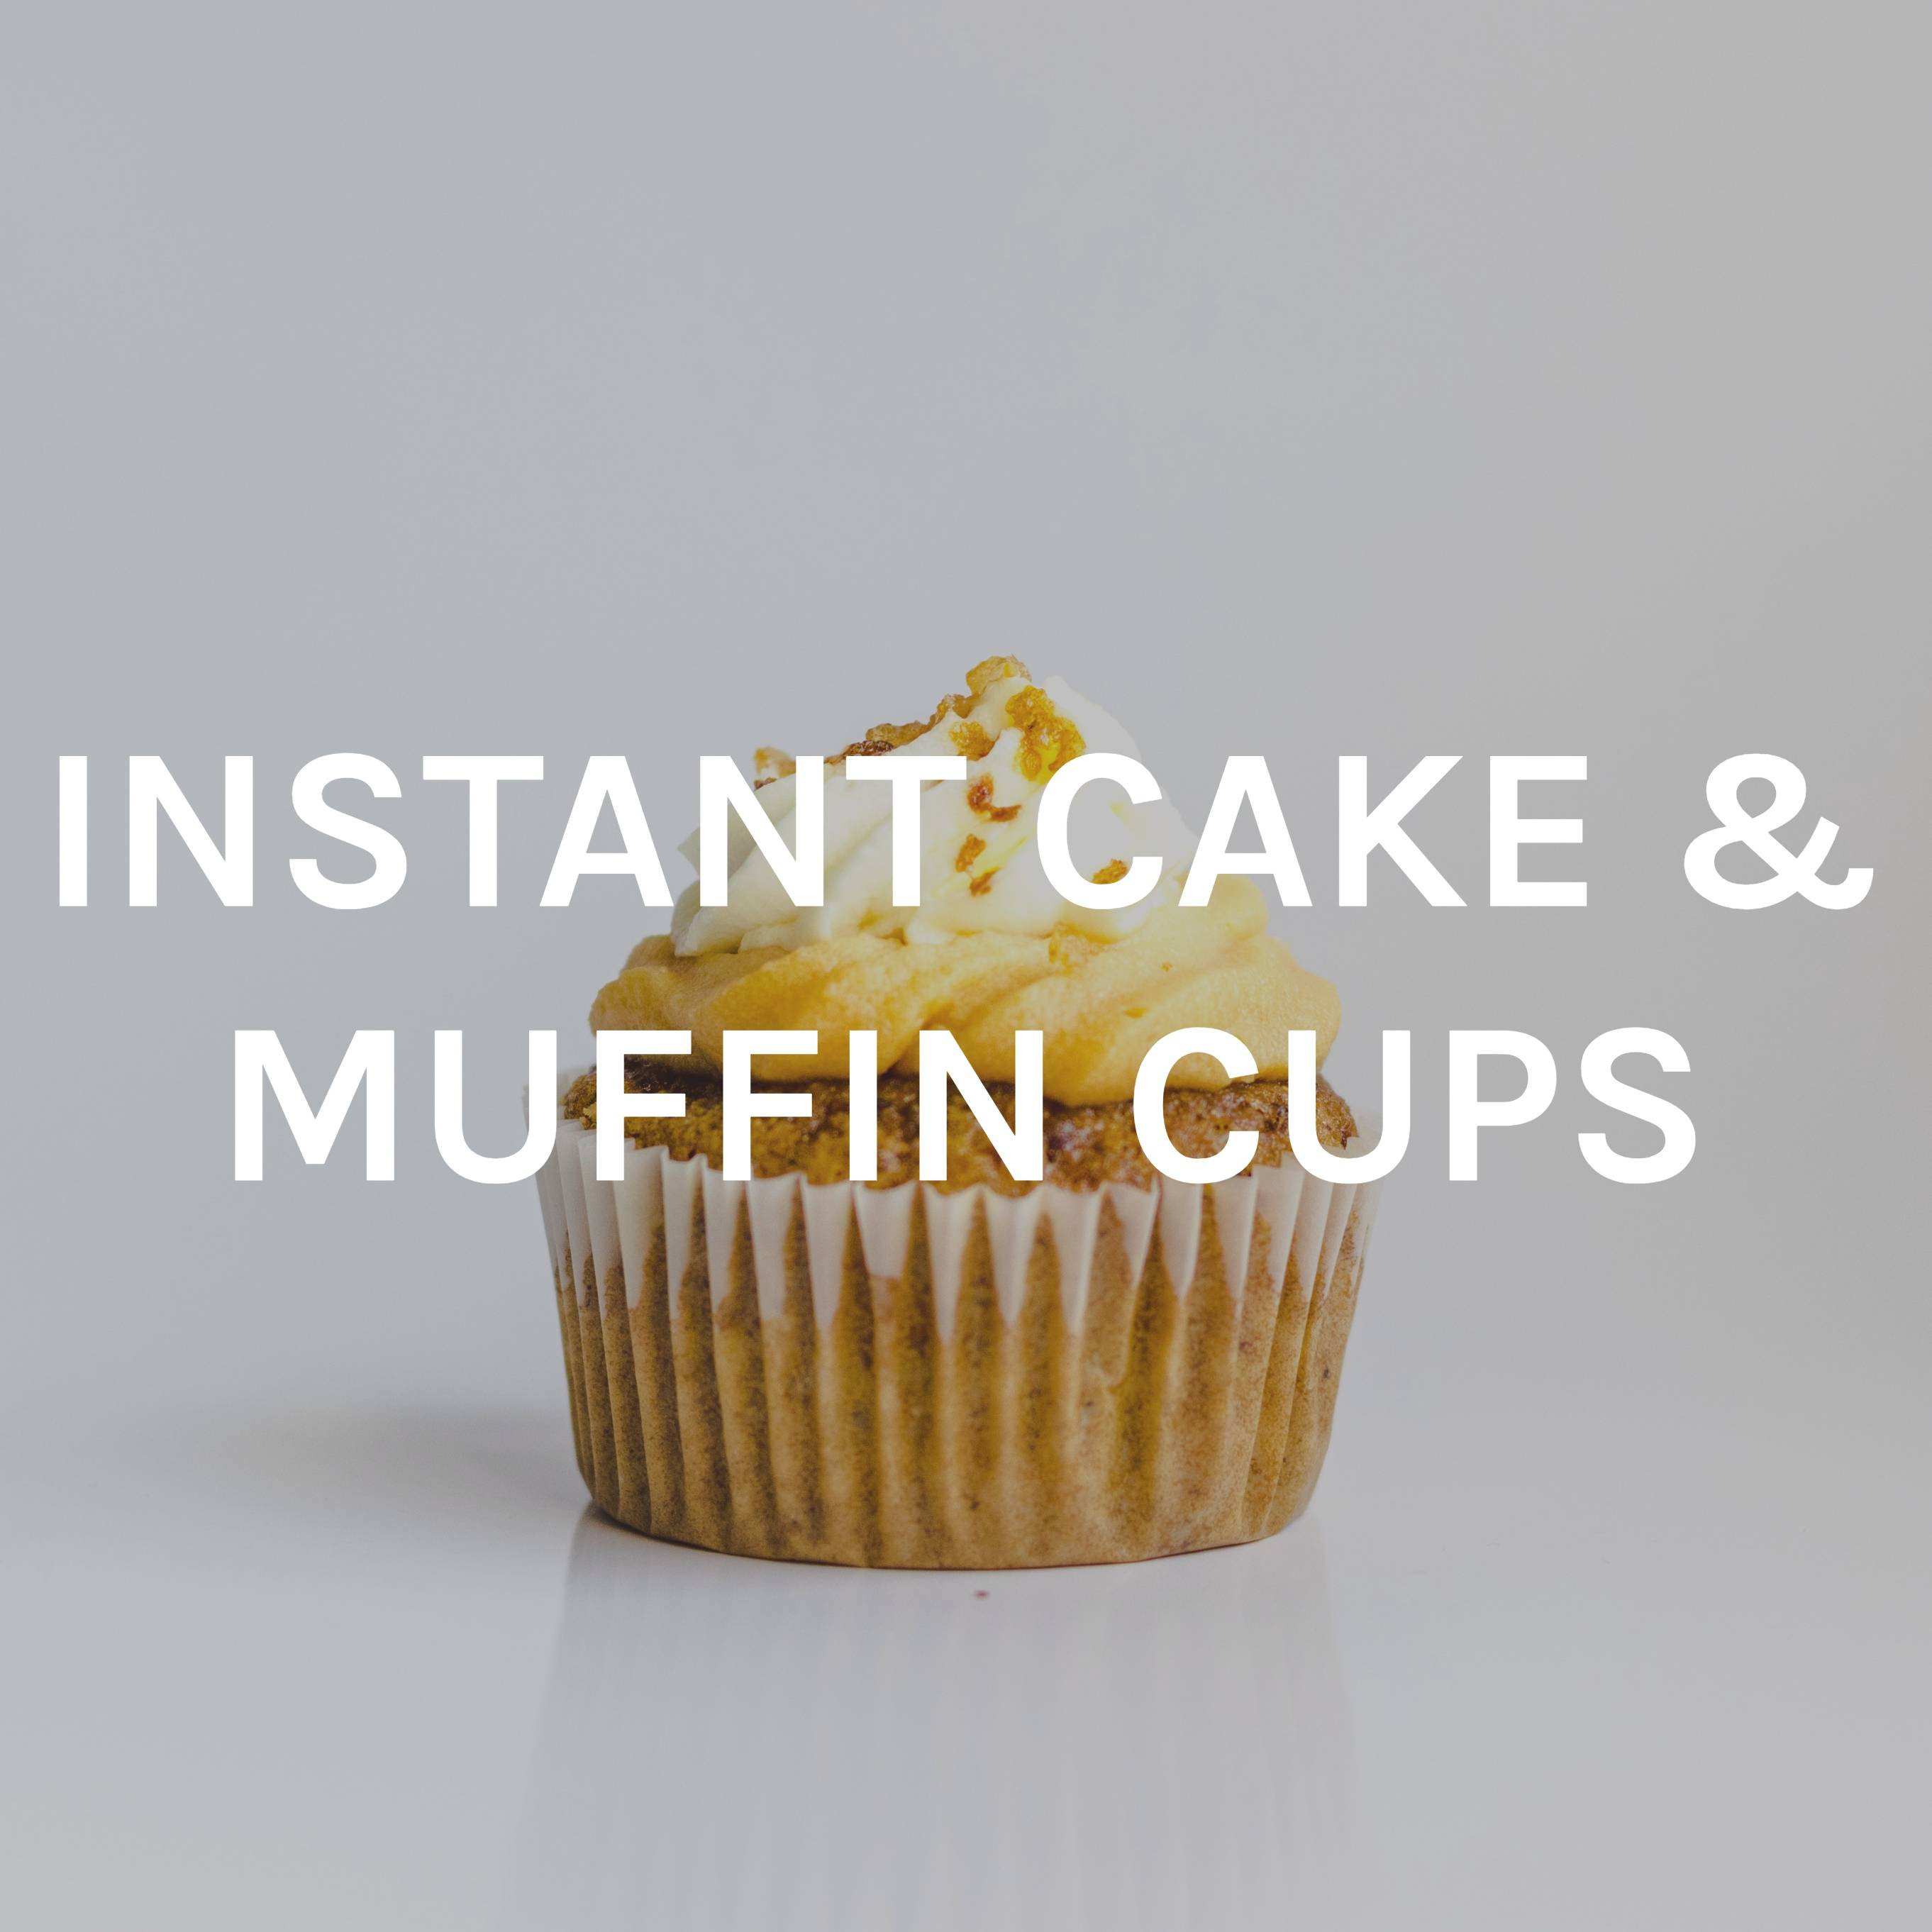 Instant Cake & Muffin Cups